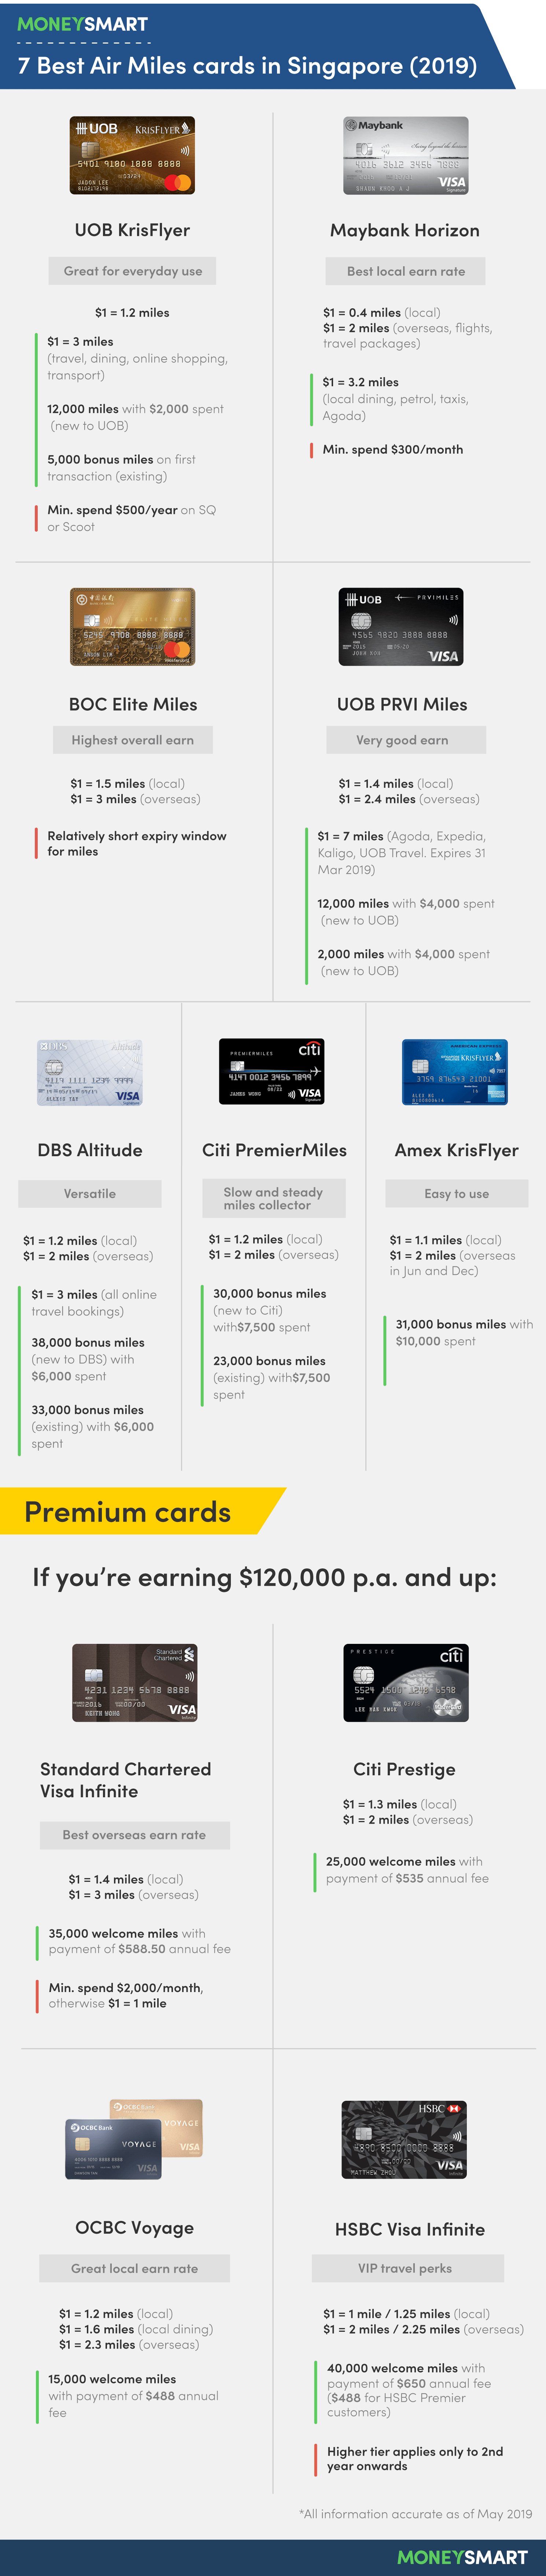 7 Best Air miles cards in Singapore